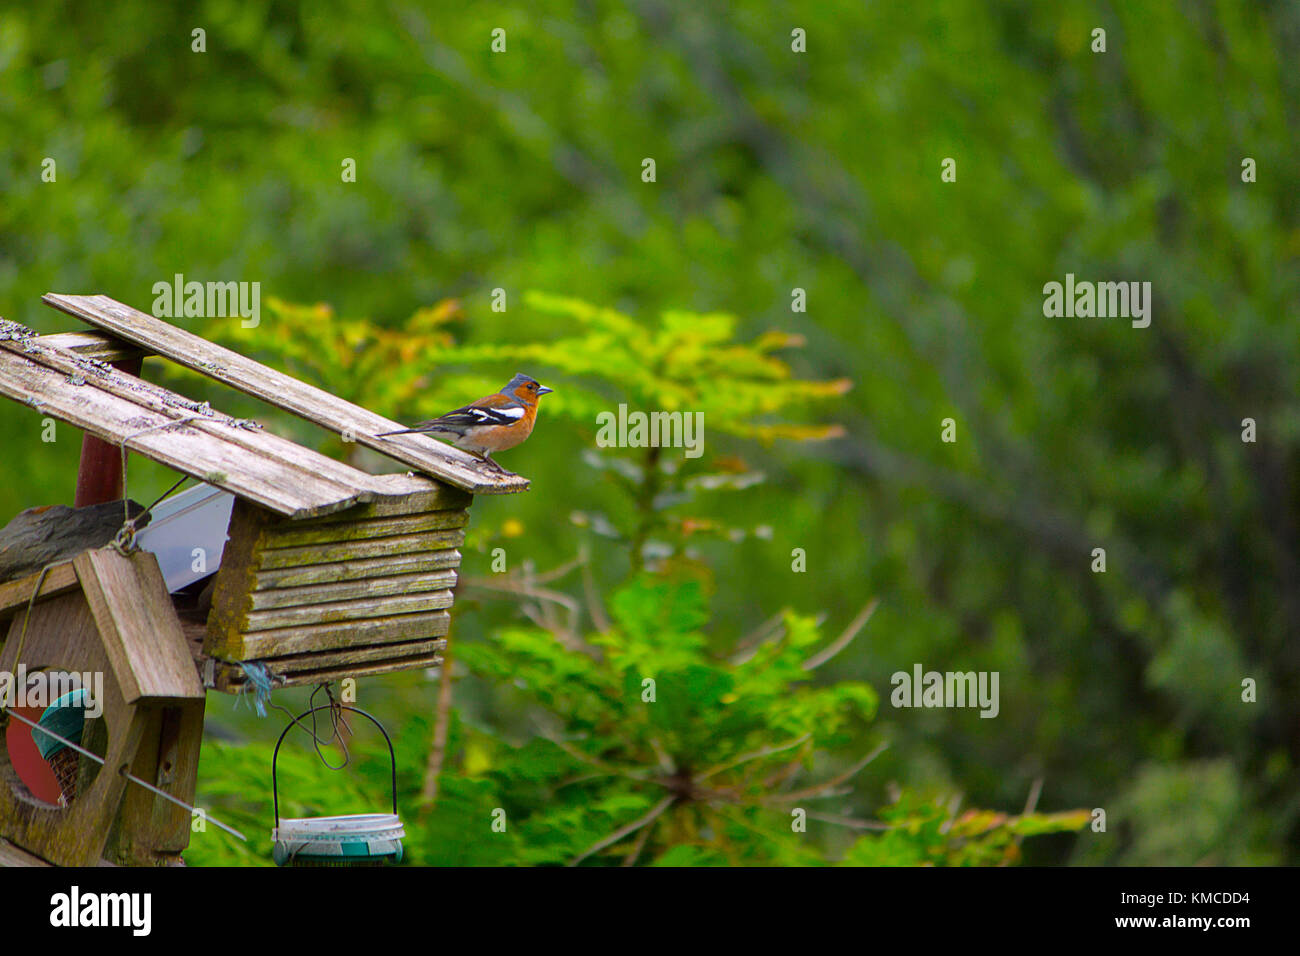 The common chaffinch, Fringilla coelebs, or chaffinch, is a common and widespread small passerine bird in the finch - Stock Image